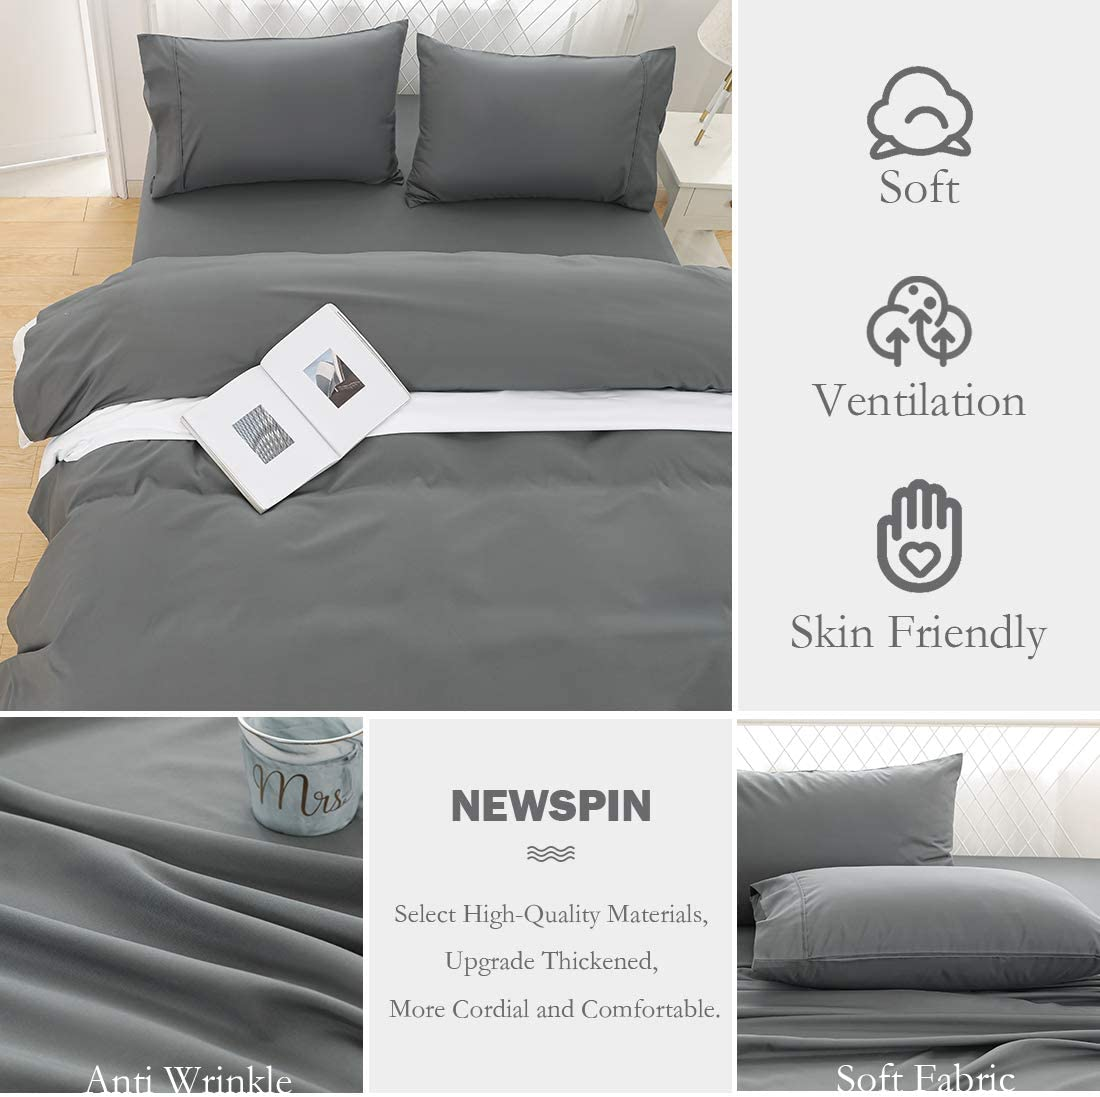 3 Piece Twin Sheet Set,Black 1800 Series Soft Sheets Thicken Durable Double Brushed Microfiber Wrinkle Resistant Bedding Sheet fit 16 inch Deep Pockets Mattress Newspin Bed Sheets Set